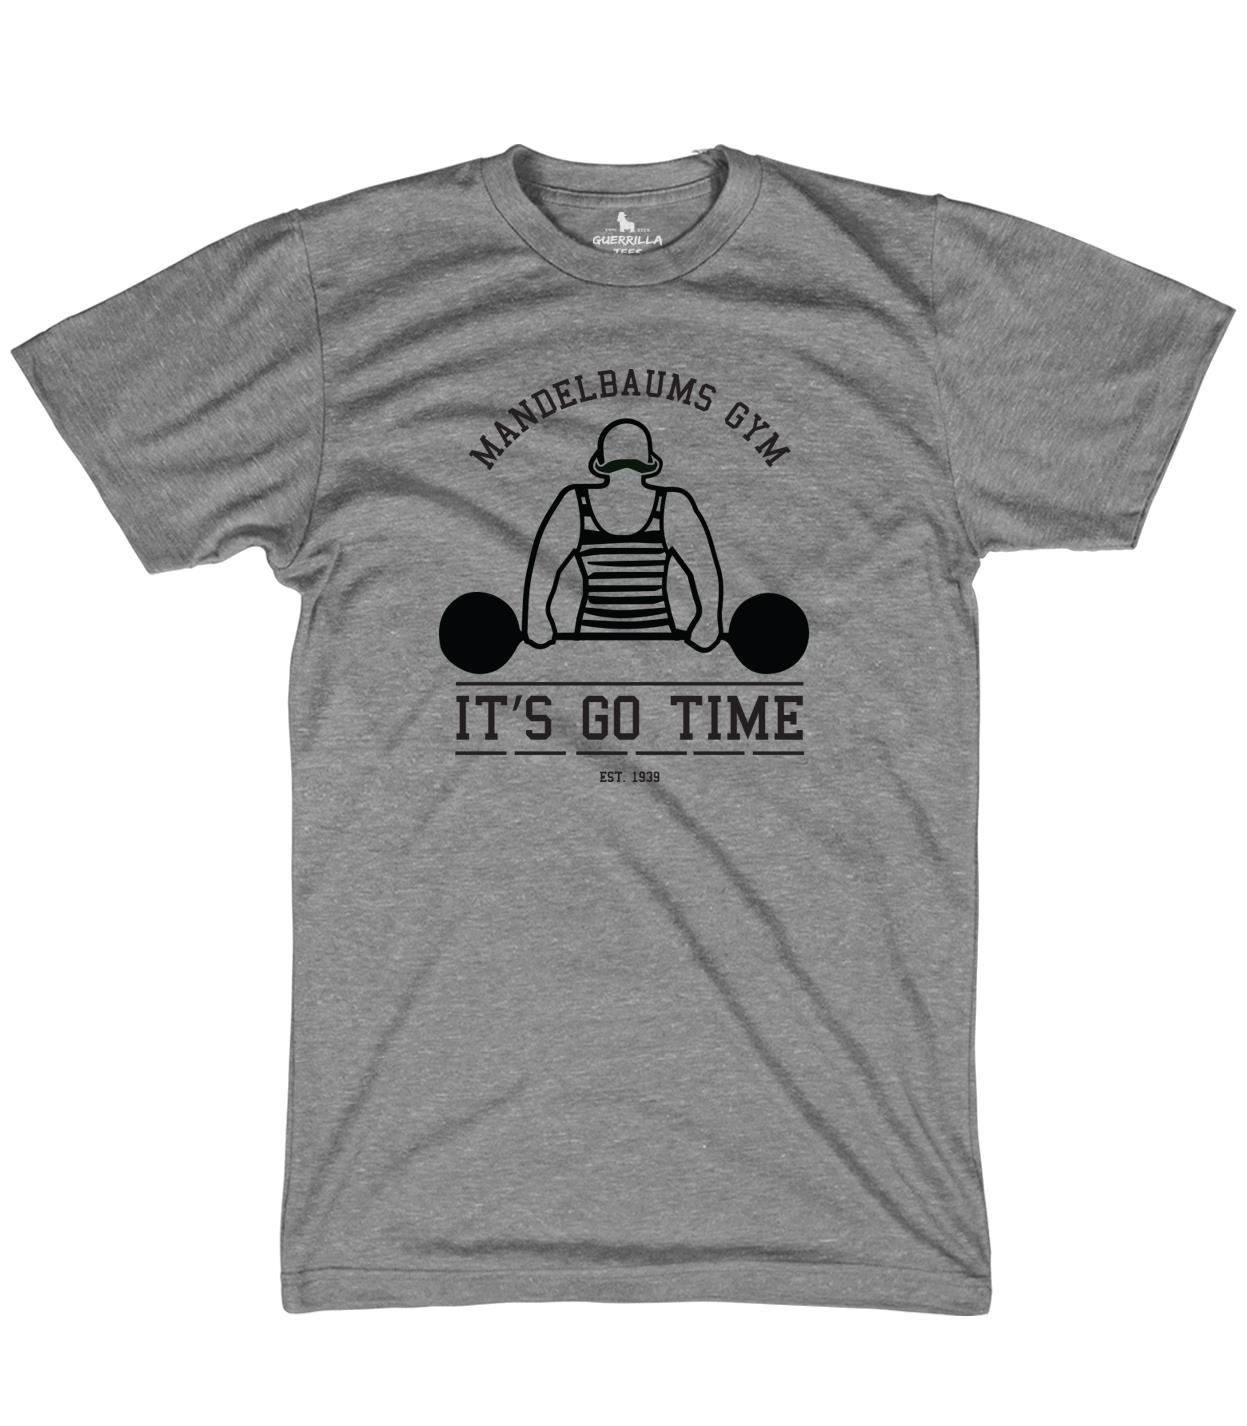 Mandelbaums Gym Funny Graphic Tees Workout And Weightlifting Tv Shirt